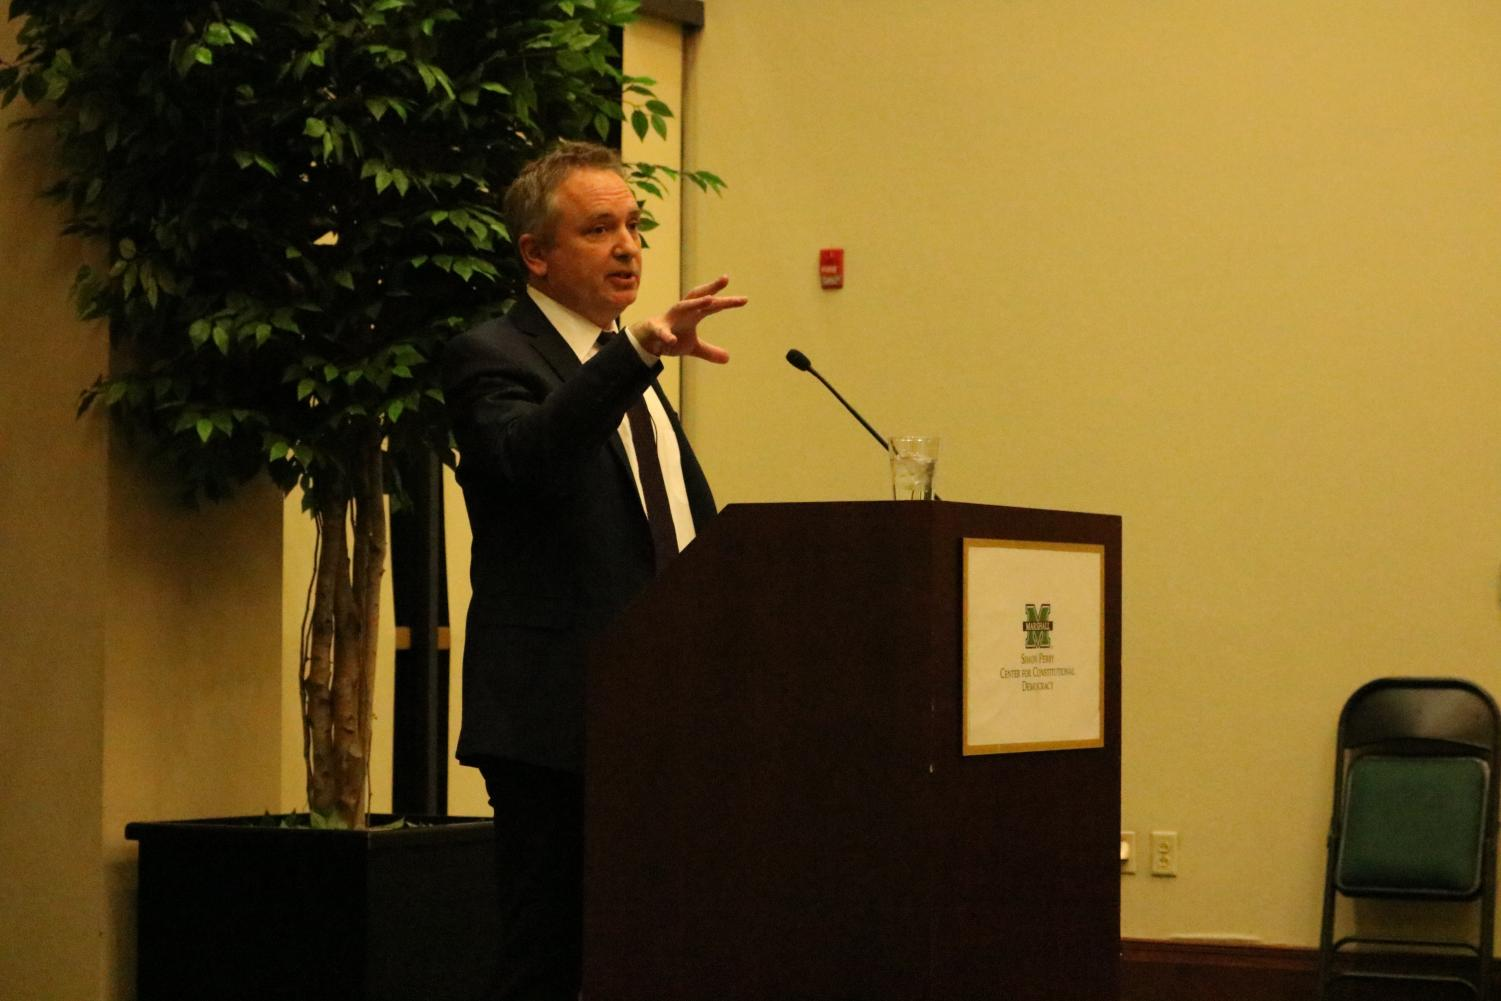 David Barron, United States Circuit Judge of the Court of Appeals for the First Circuit, addresses the crowd during an Amicus Curiae lecture Nov. 12.